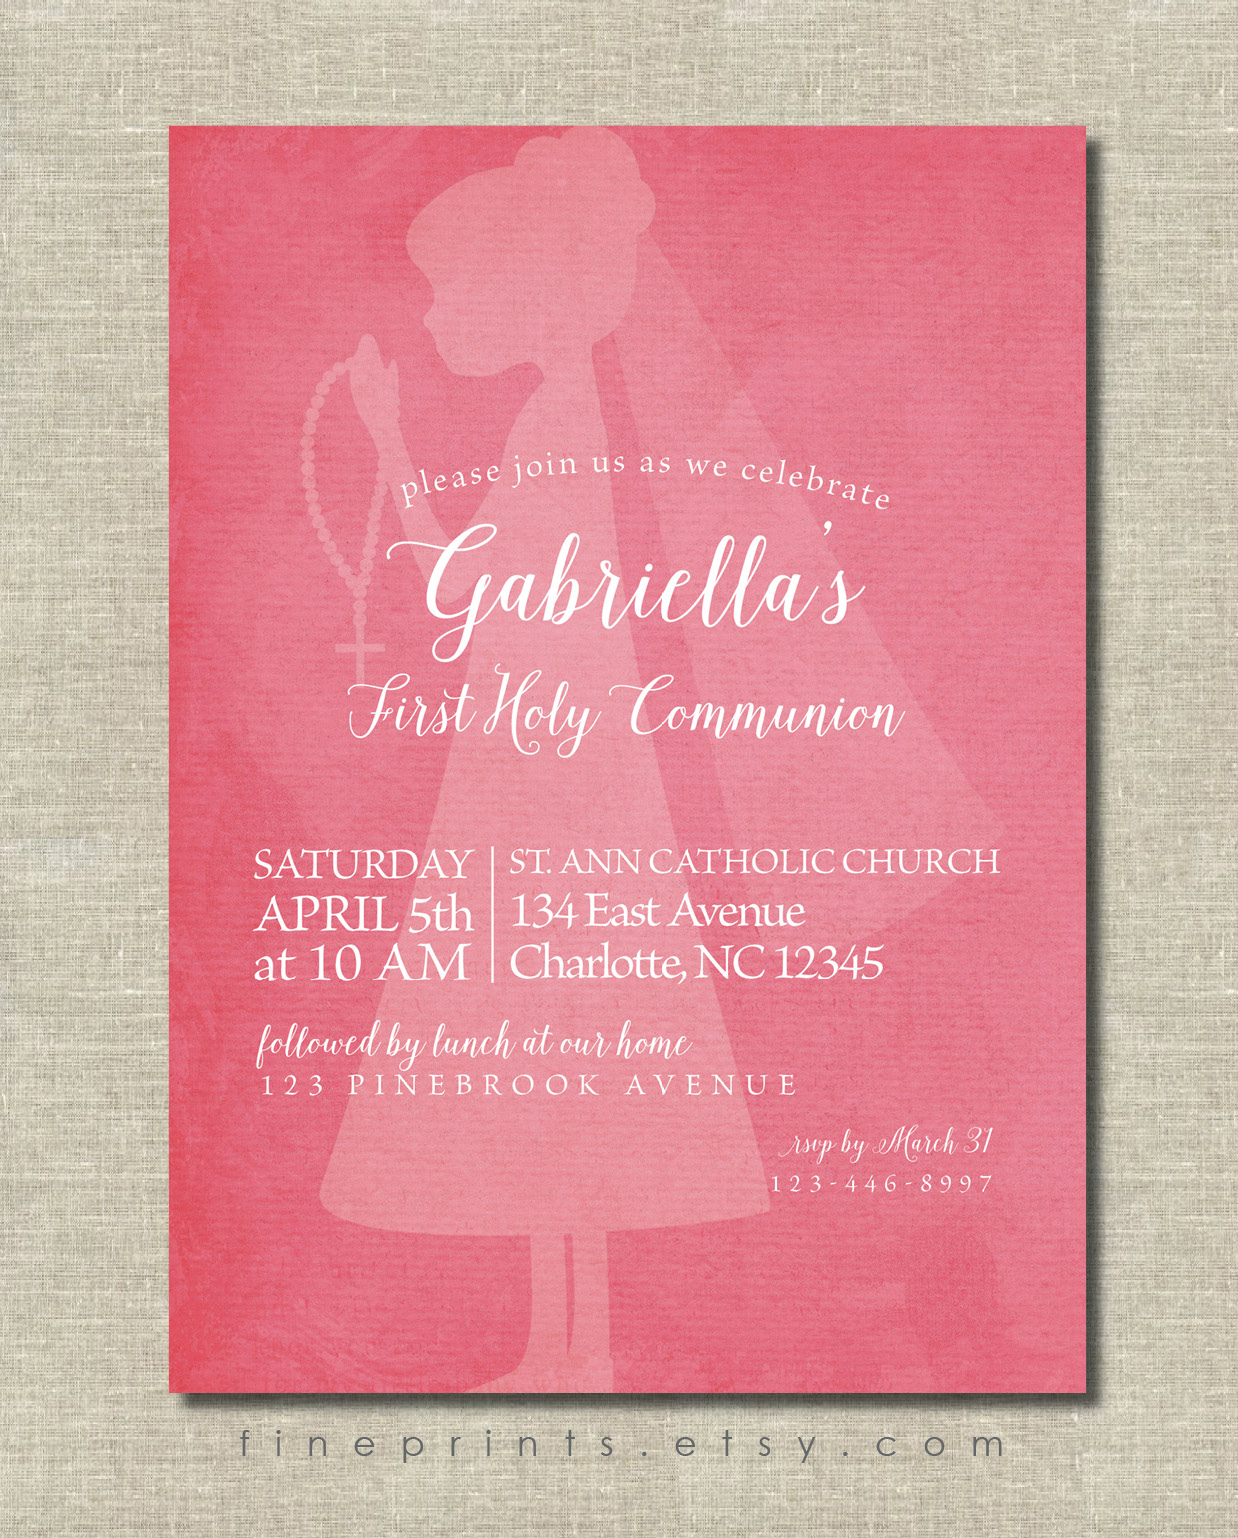 First Communion Invitation with watercolor background, silhouette, and calligraphy script